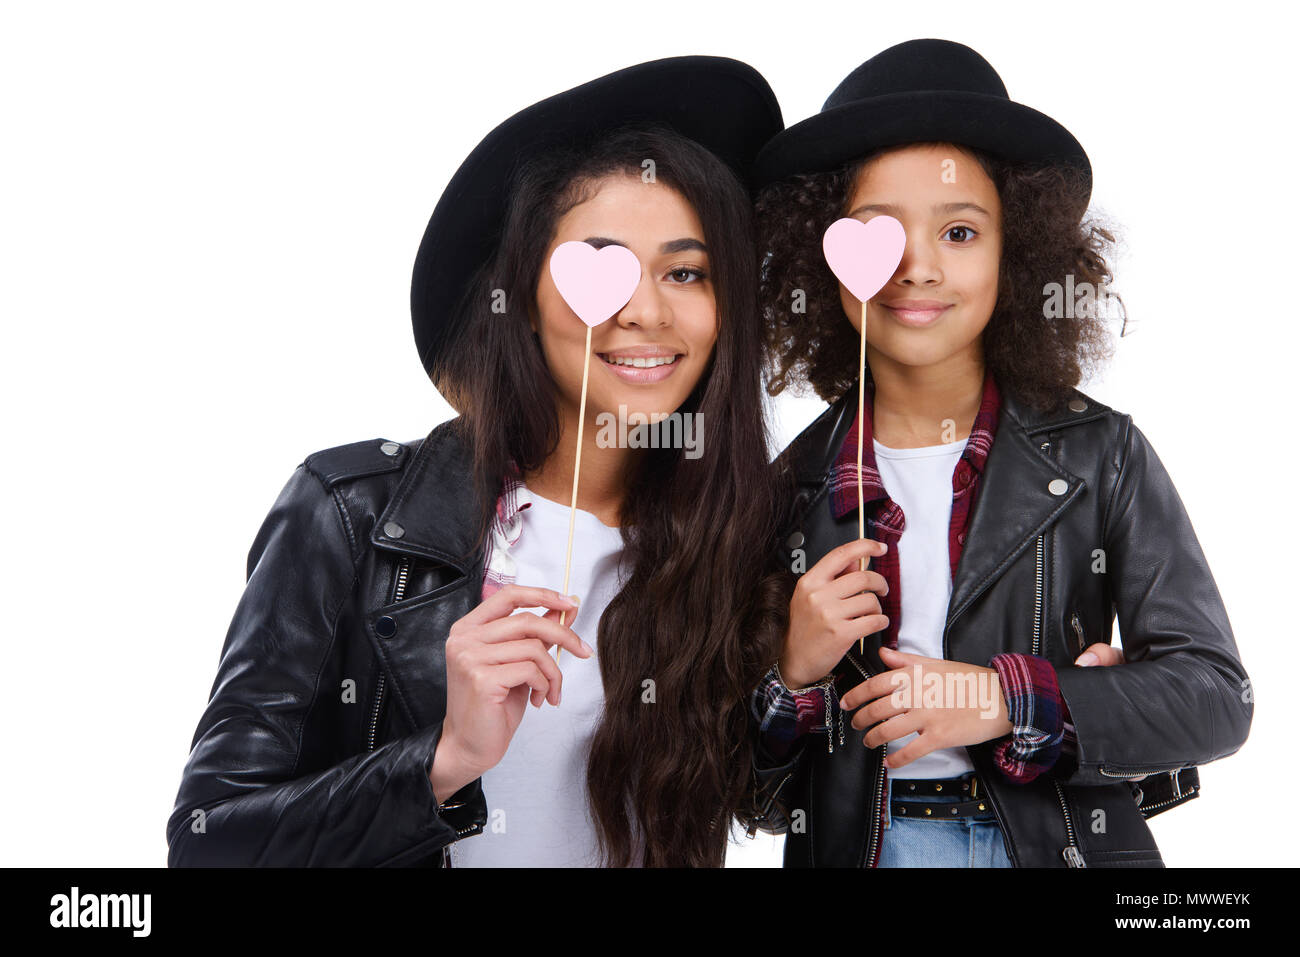 Mother And Daughter Covering Eyes With Heart Symbols On Sticks